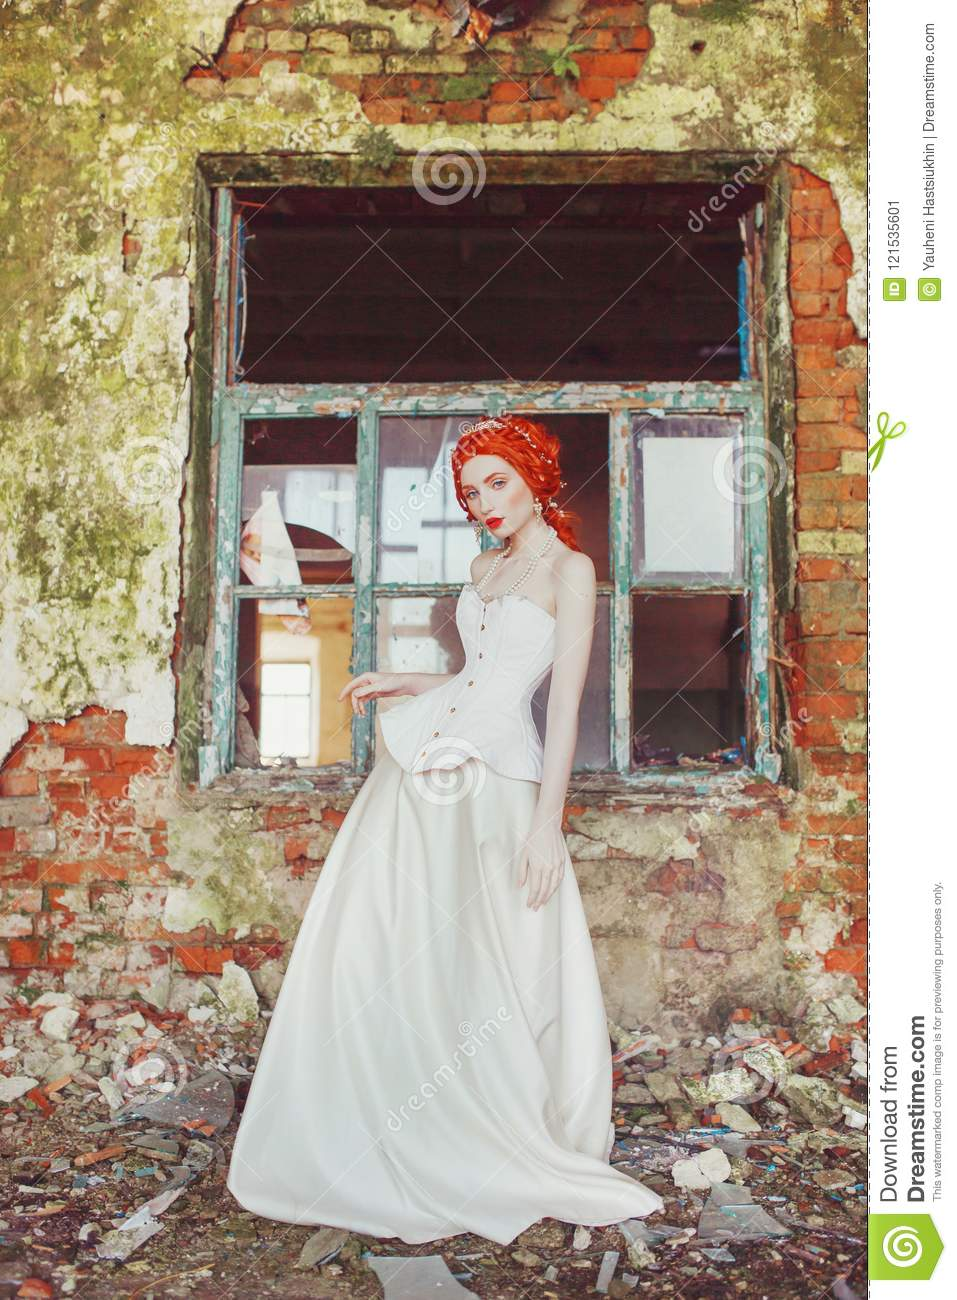 Young renaissance redhead princess in old castle. Fabulous rococo queen in white dress against backdrop of old stone wall.